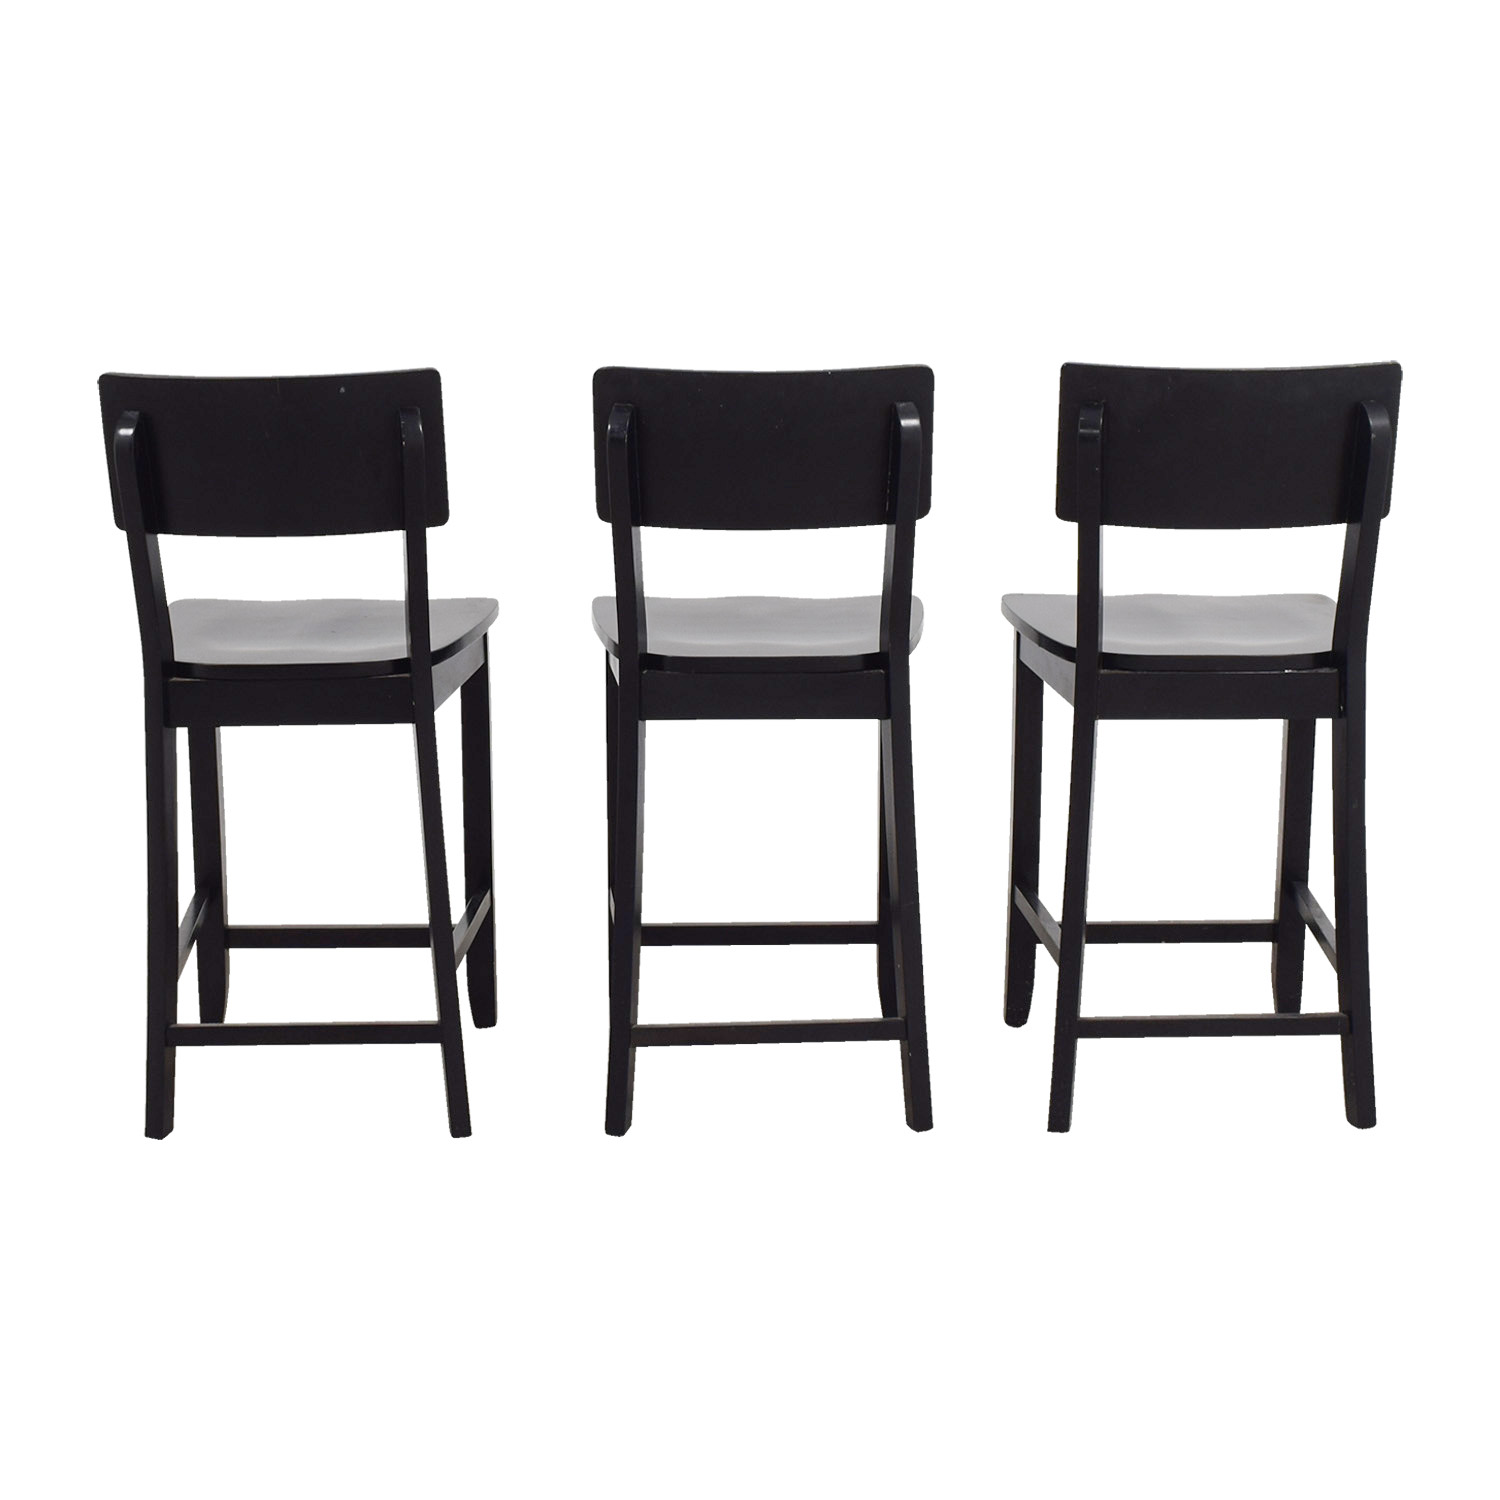 74 off crate barrel crate barrel black wood bar stools chairs. Black Bedroom Furniture Sets. Home Design Ideas